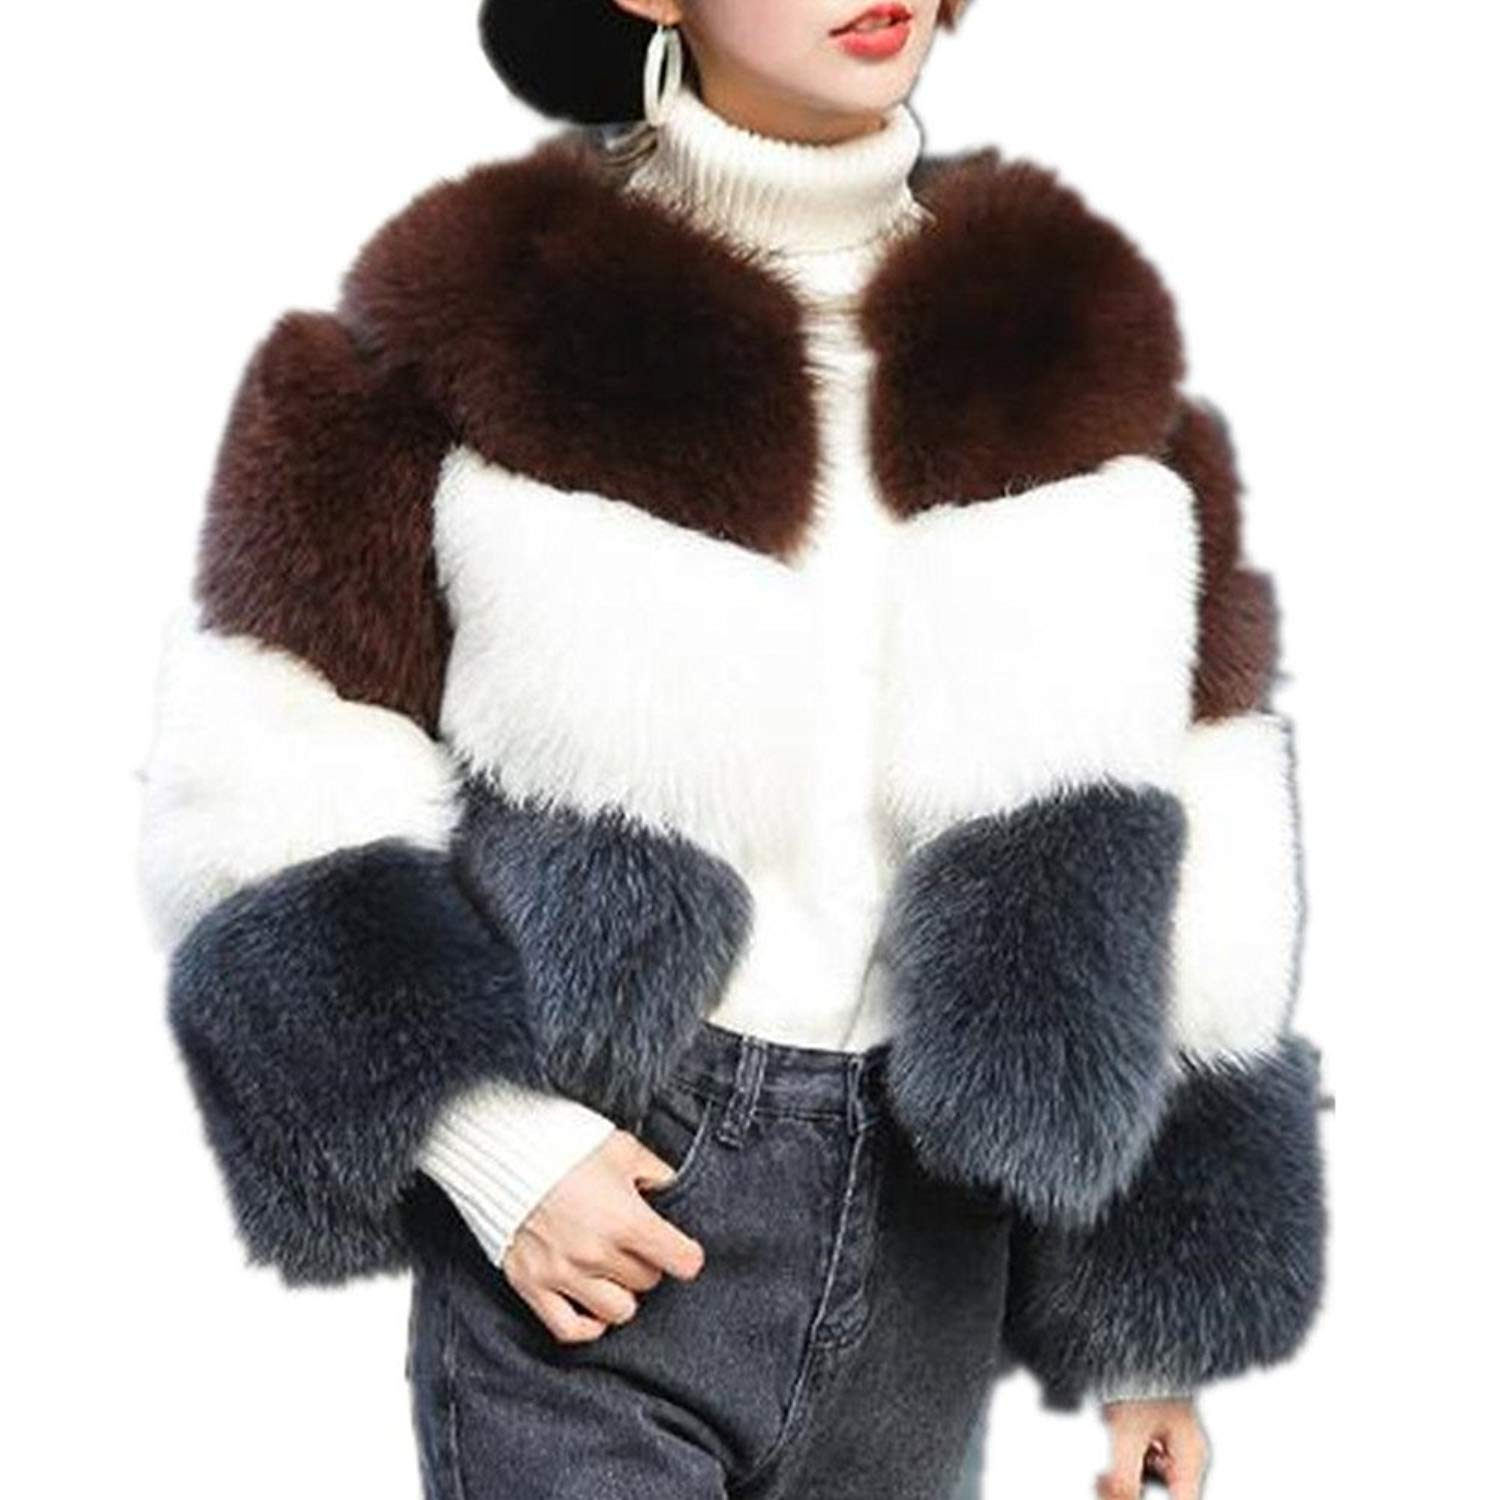 Lisa Colly New Winter Coat Furs Coat Fluffy Warm Faux Fur Coat Jacket Women Short Furry Fake Fur Outerwear Party Overcoat